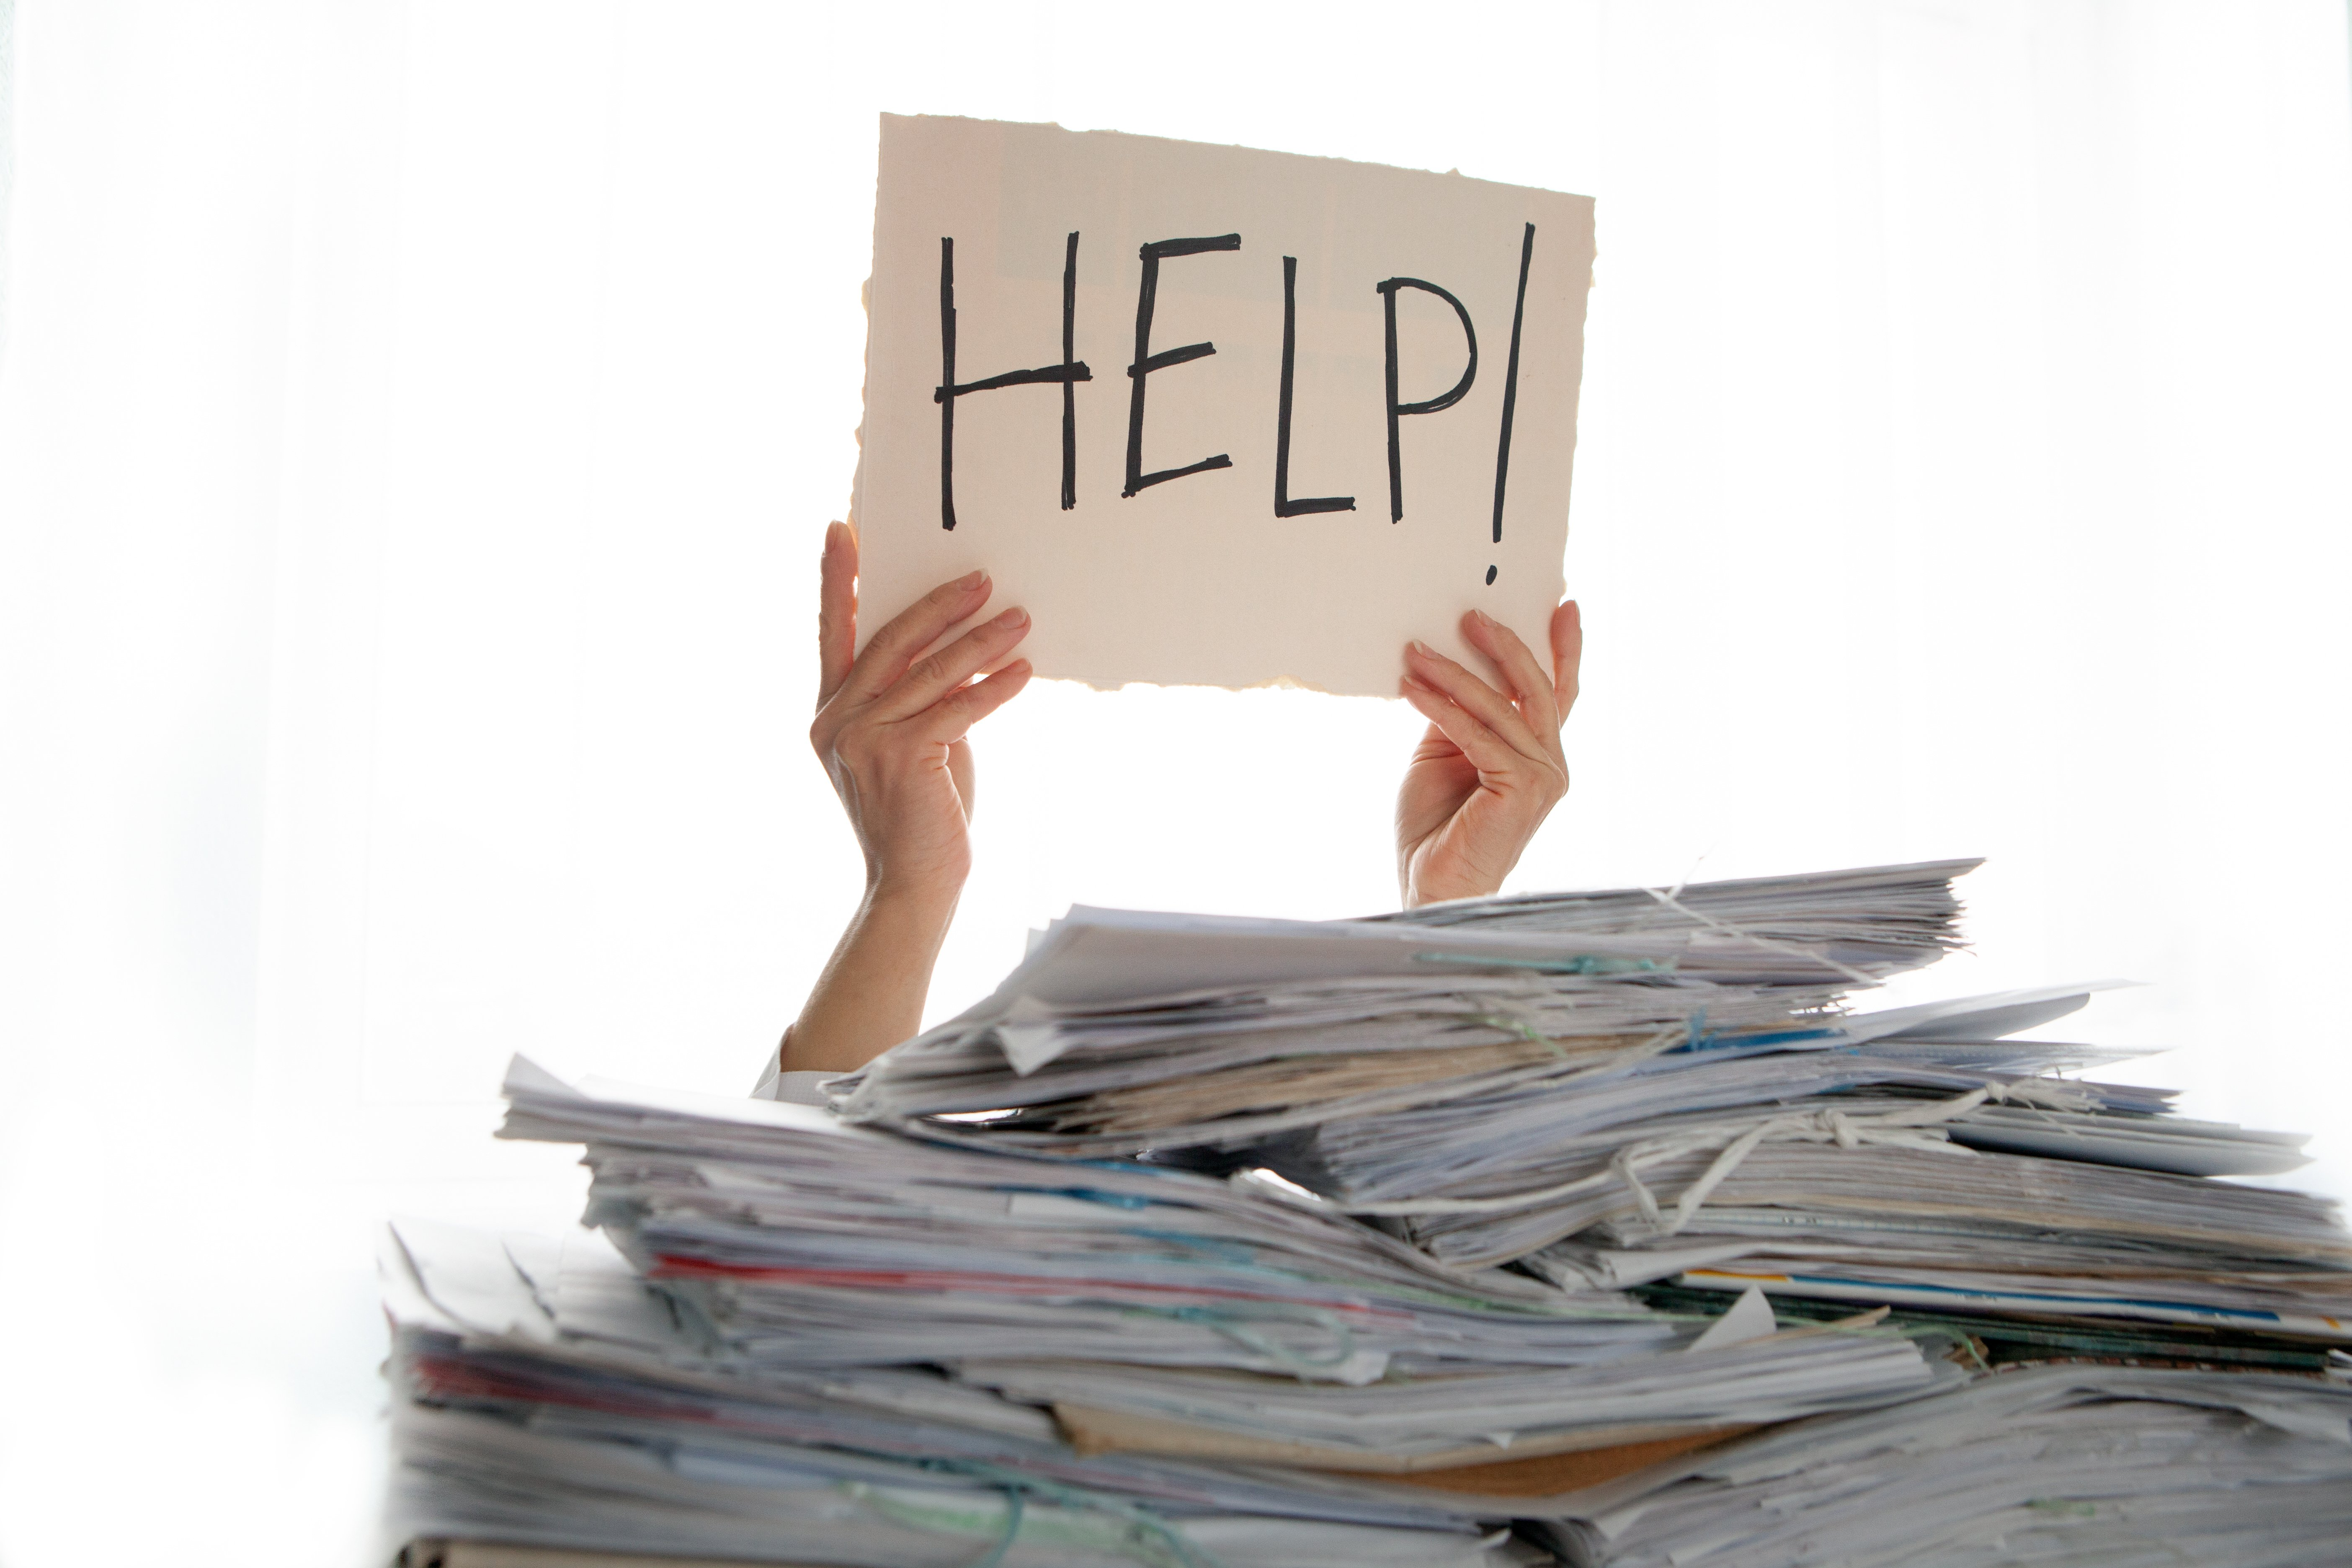 student-help-sign-pile-papers